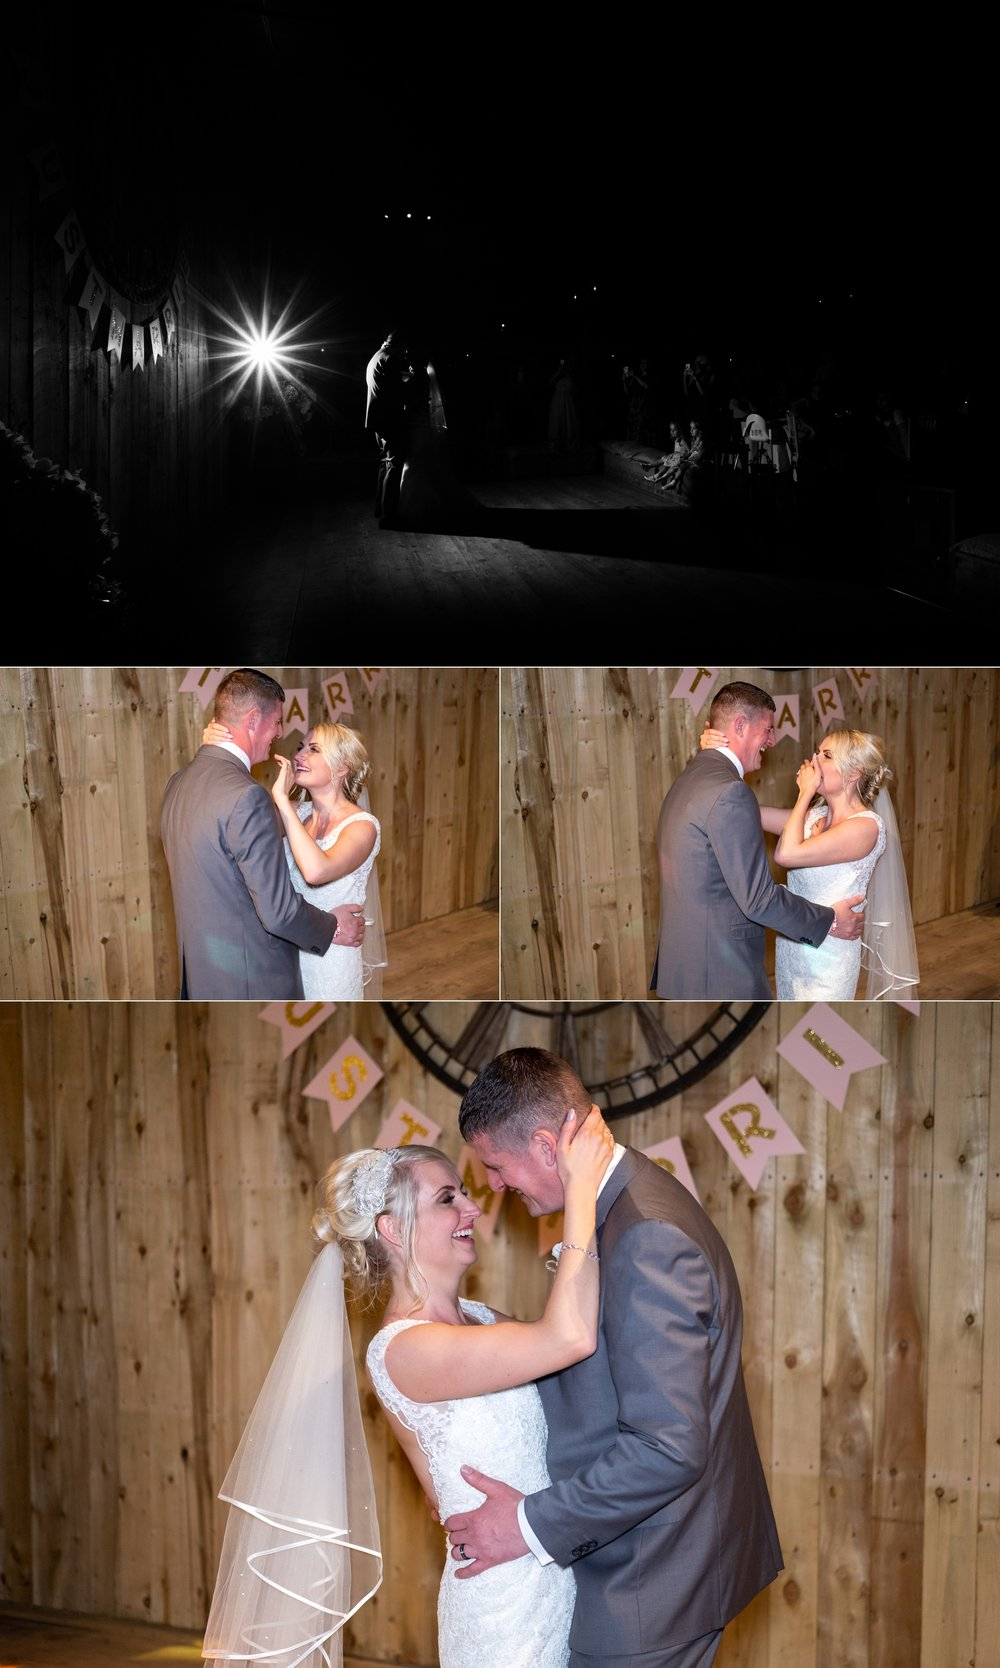 wedding photo photographer alcumlow farm 18.jpg